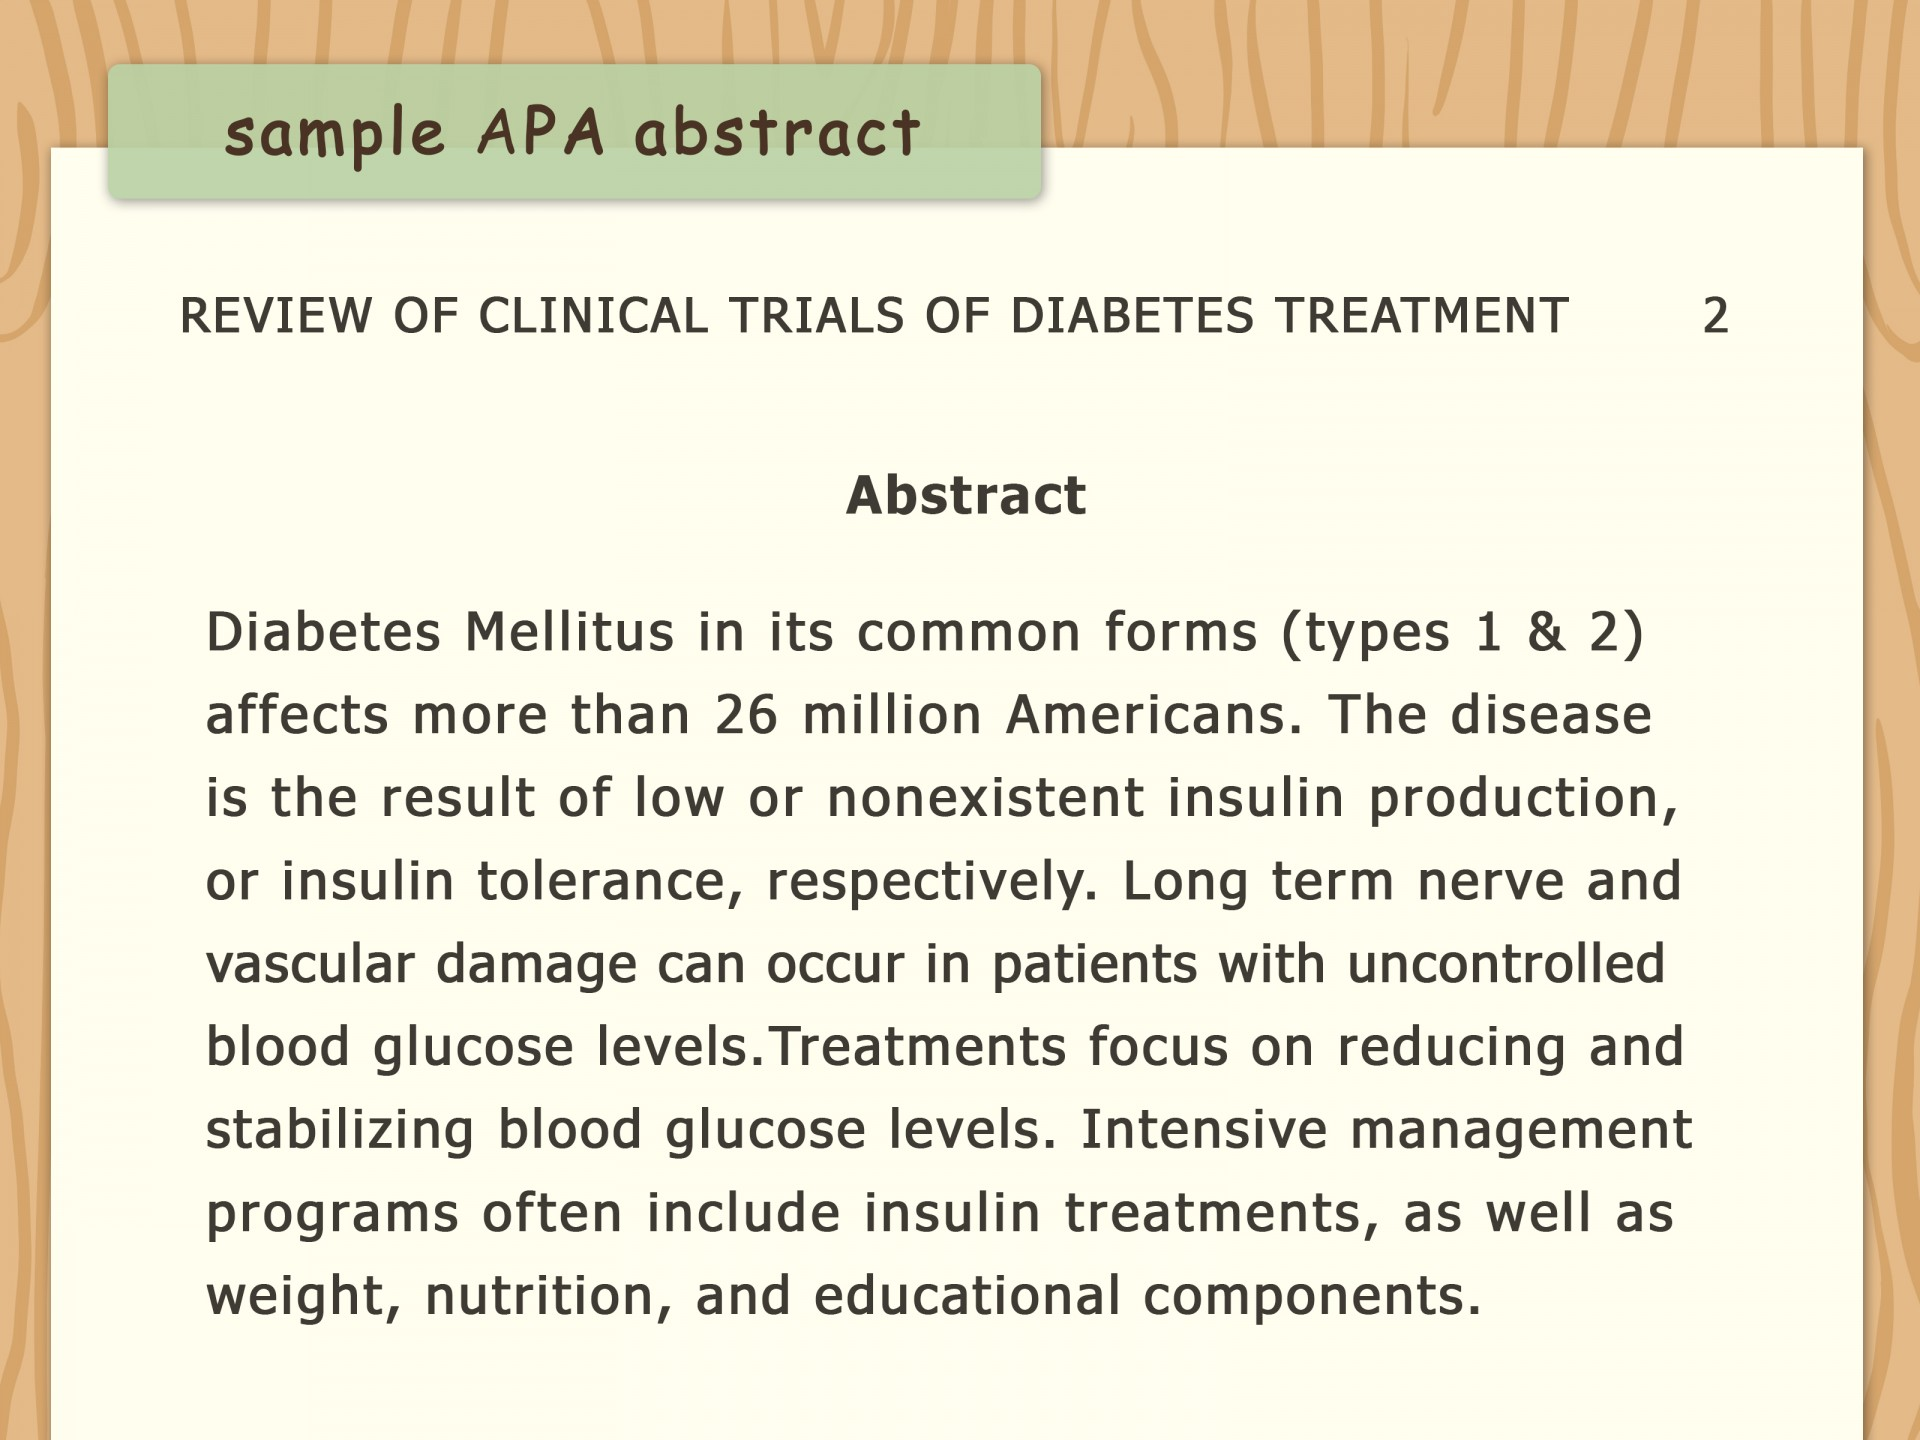 001 Diabetes Research Paper Apa Format Write An Style Step Version Stirring 1920